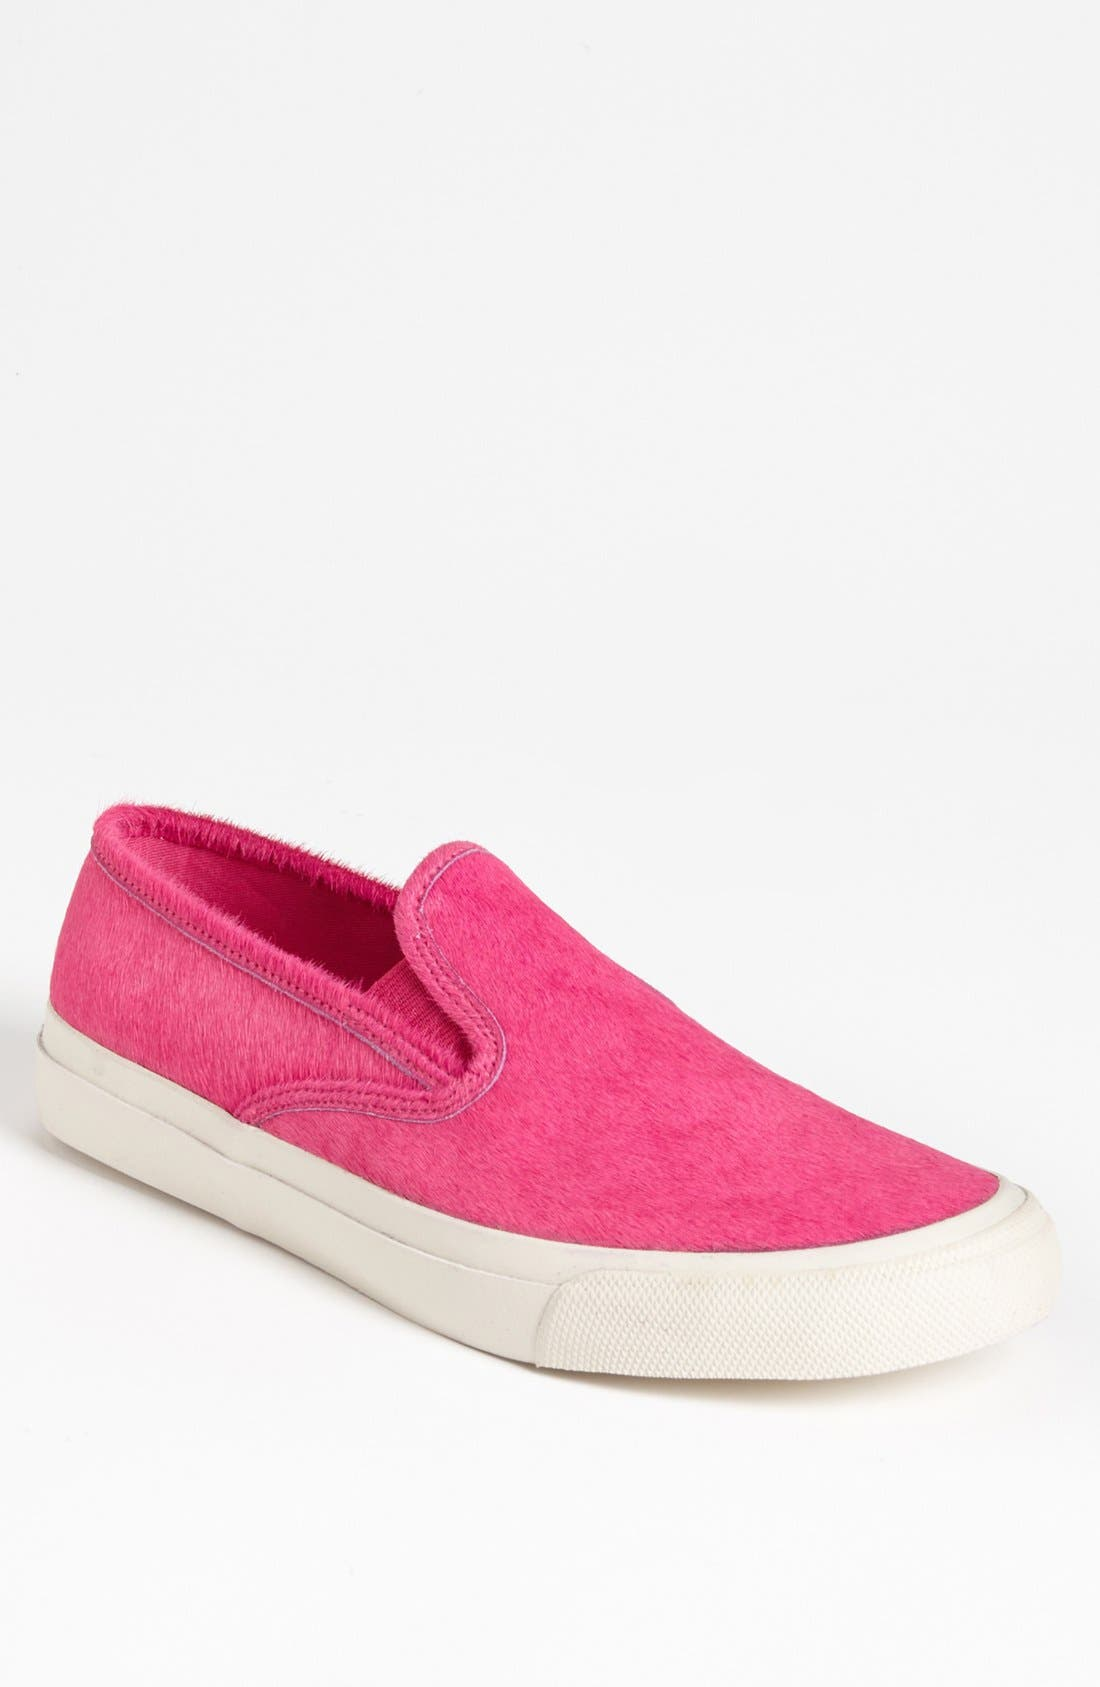 Main Image - Sperry Top-Sider® for Jeffrey 'CVO' Slip-On